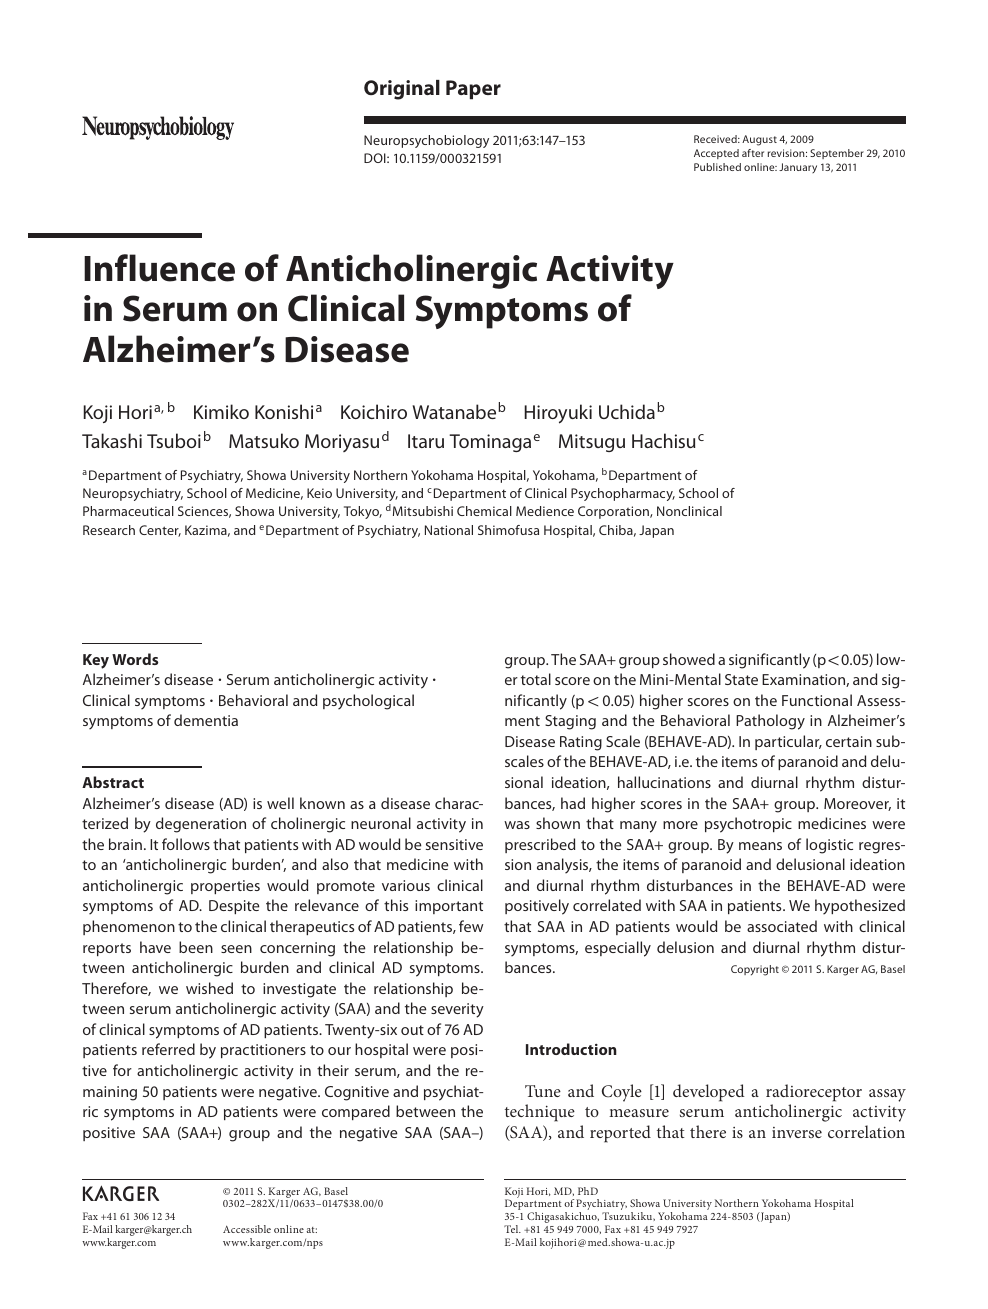 Influence of Anticholinergic Activity in Serum on Clinical Symptoms